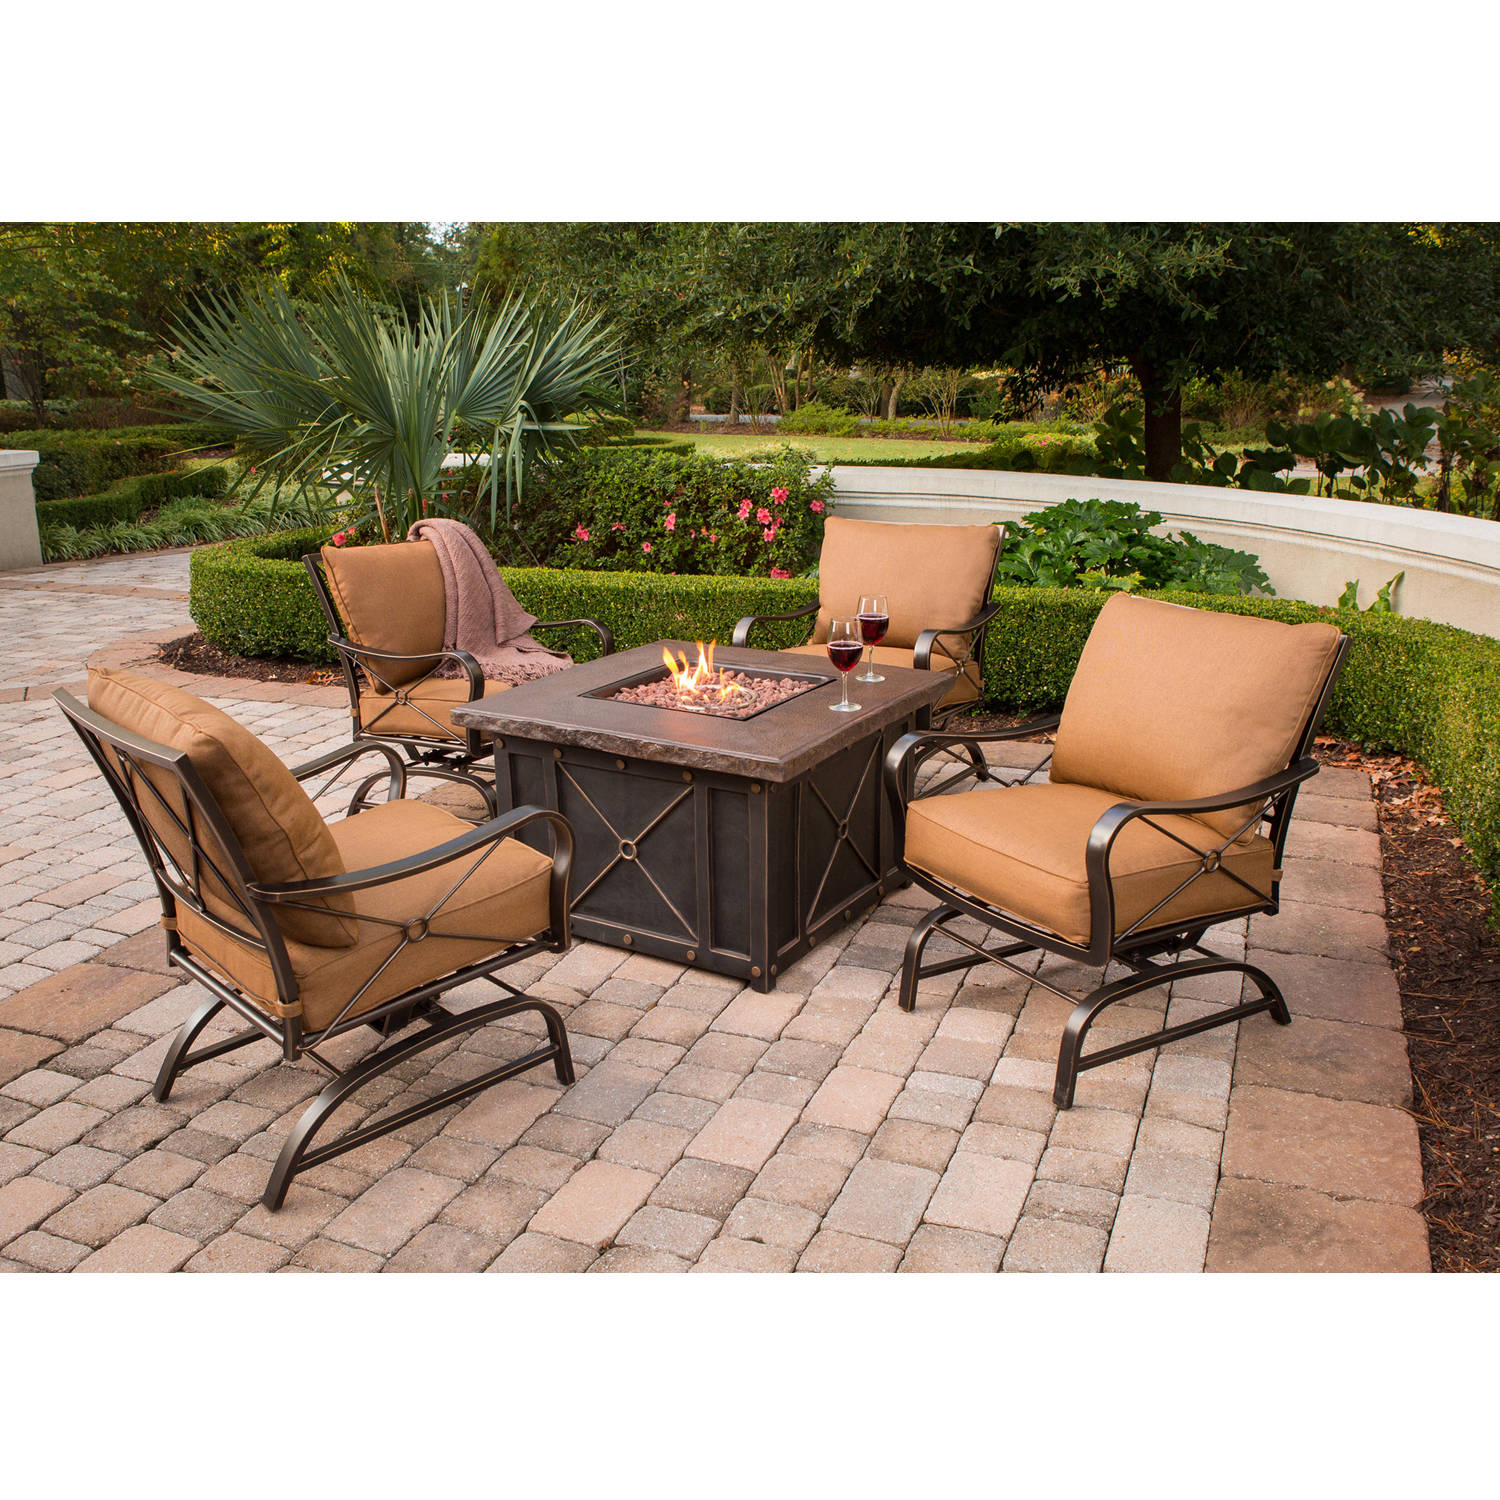 Hanover Outdoor Summer Nights Aluminum 5-Piece Lounge Set with DuraStone Firepit Table,... by Hanover Outdoor